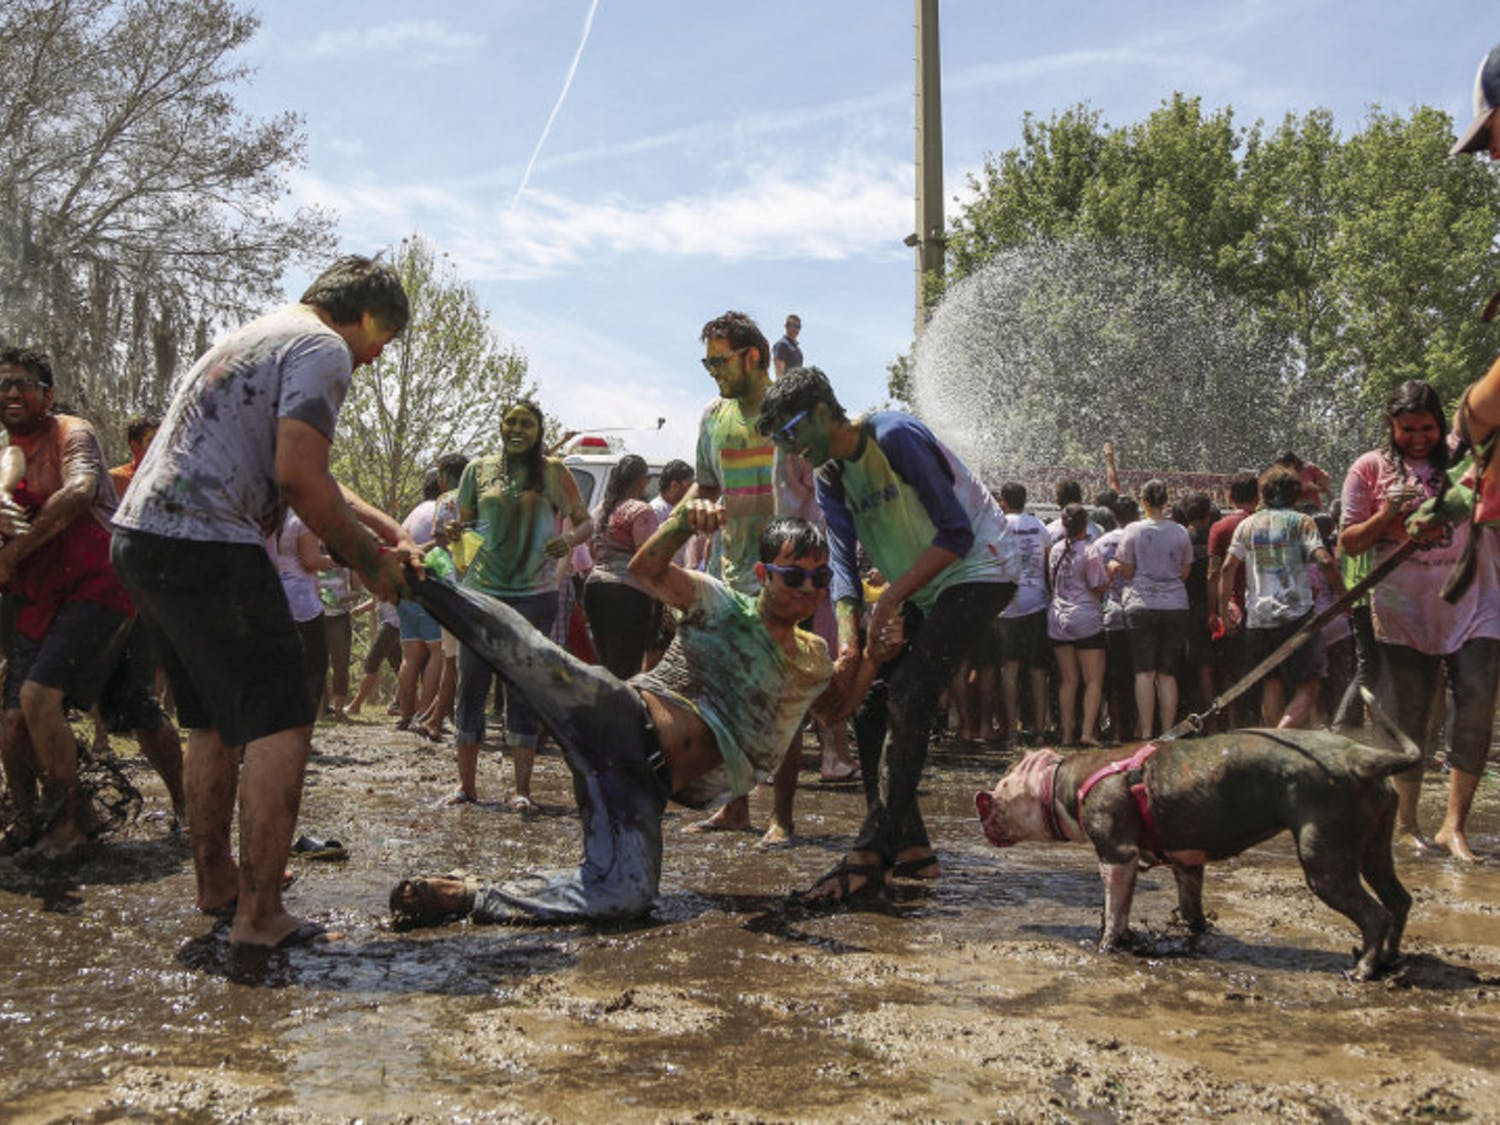 Participants of the 2017 UF Holi Festival of Colors, organized by the Indian Student Association and Student Government, have a mud fight on Sunday afternoon on Flavet Field. After the kickoff, people went under water thrown by a fire truck.